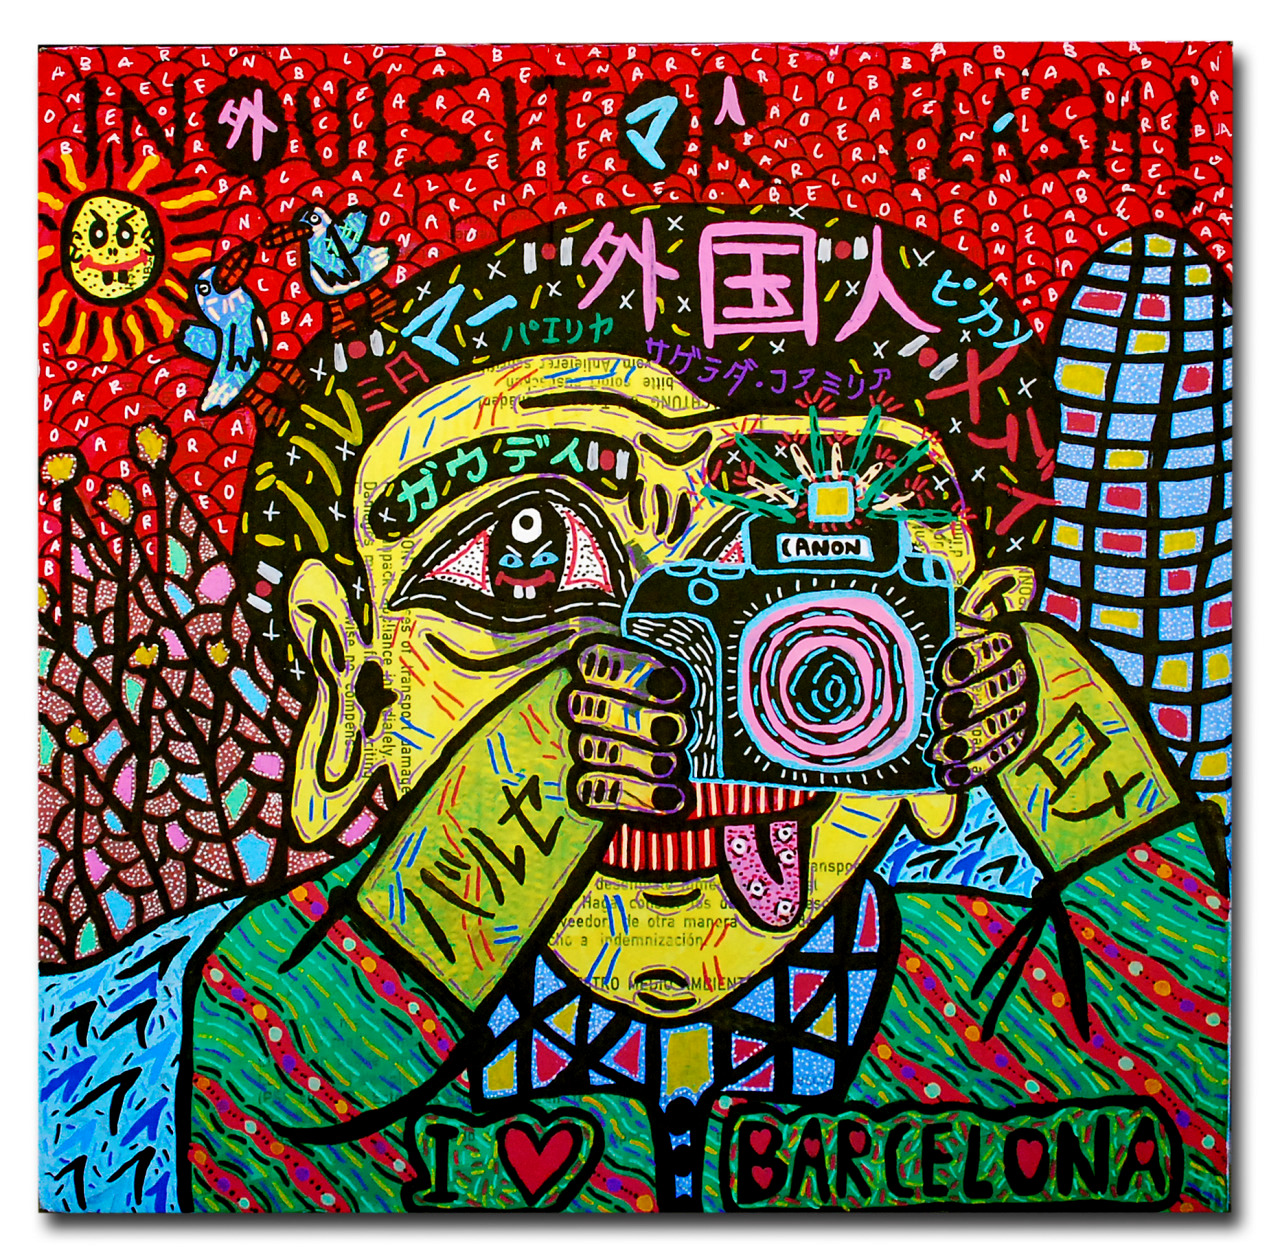 """""""Inquisitor flash!"""" , 2014   Acrylic paint and Posca marker, 60 x 60 cm"""